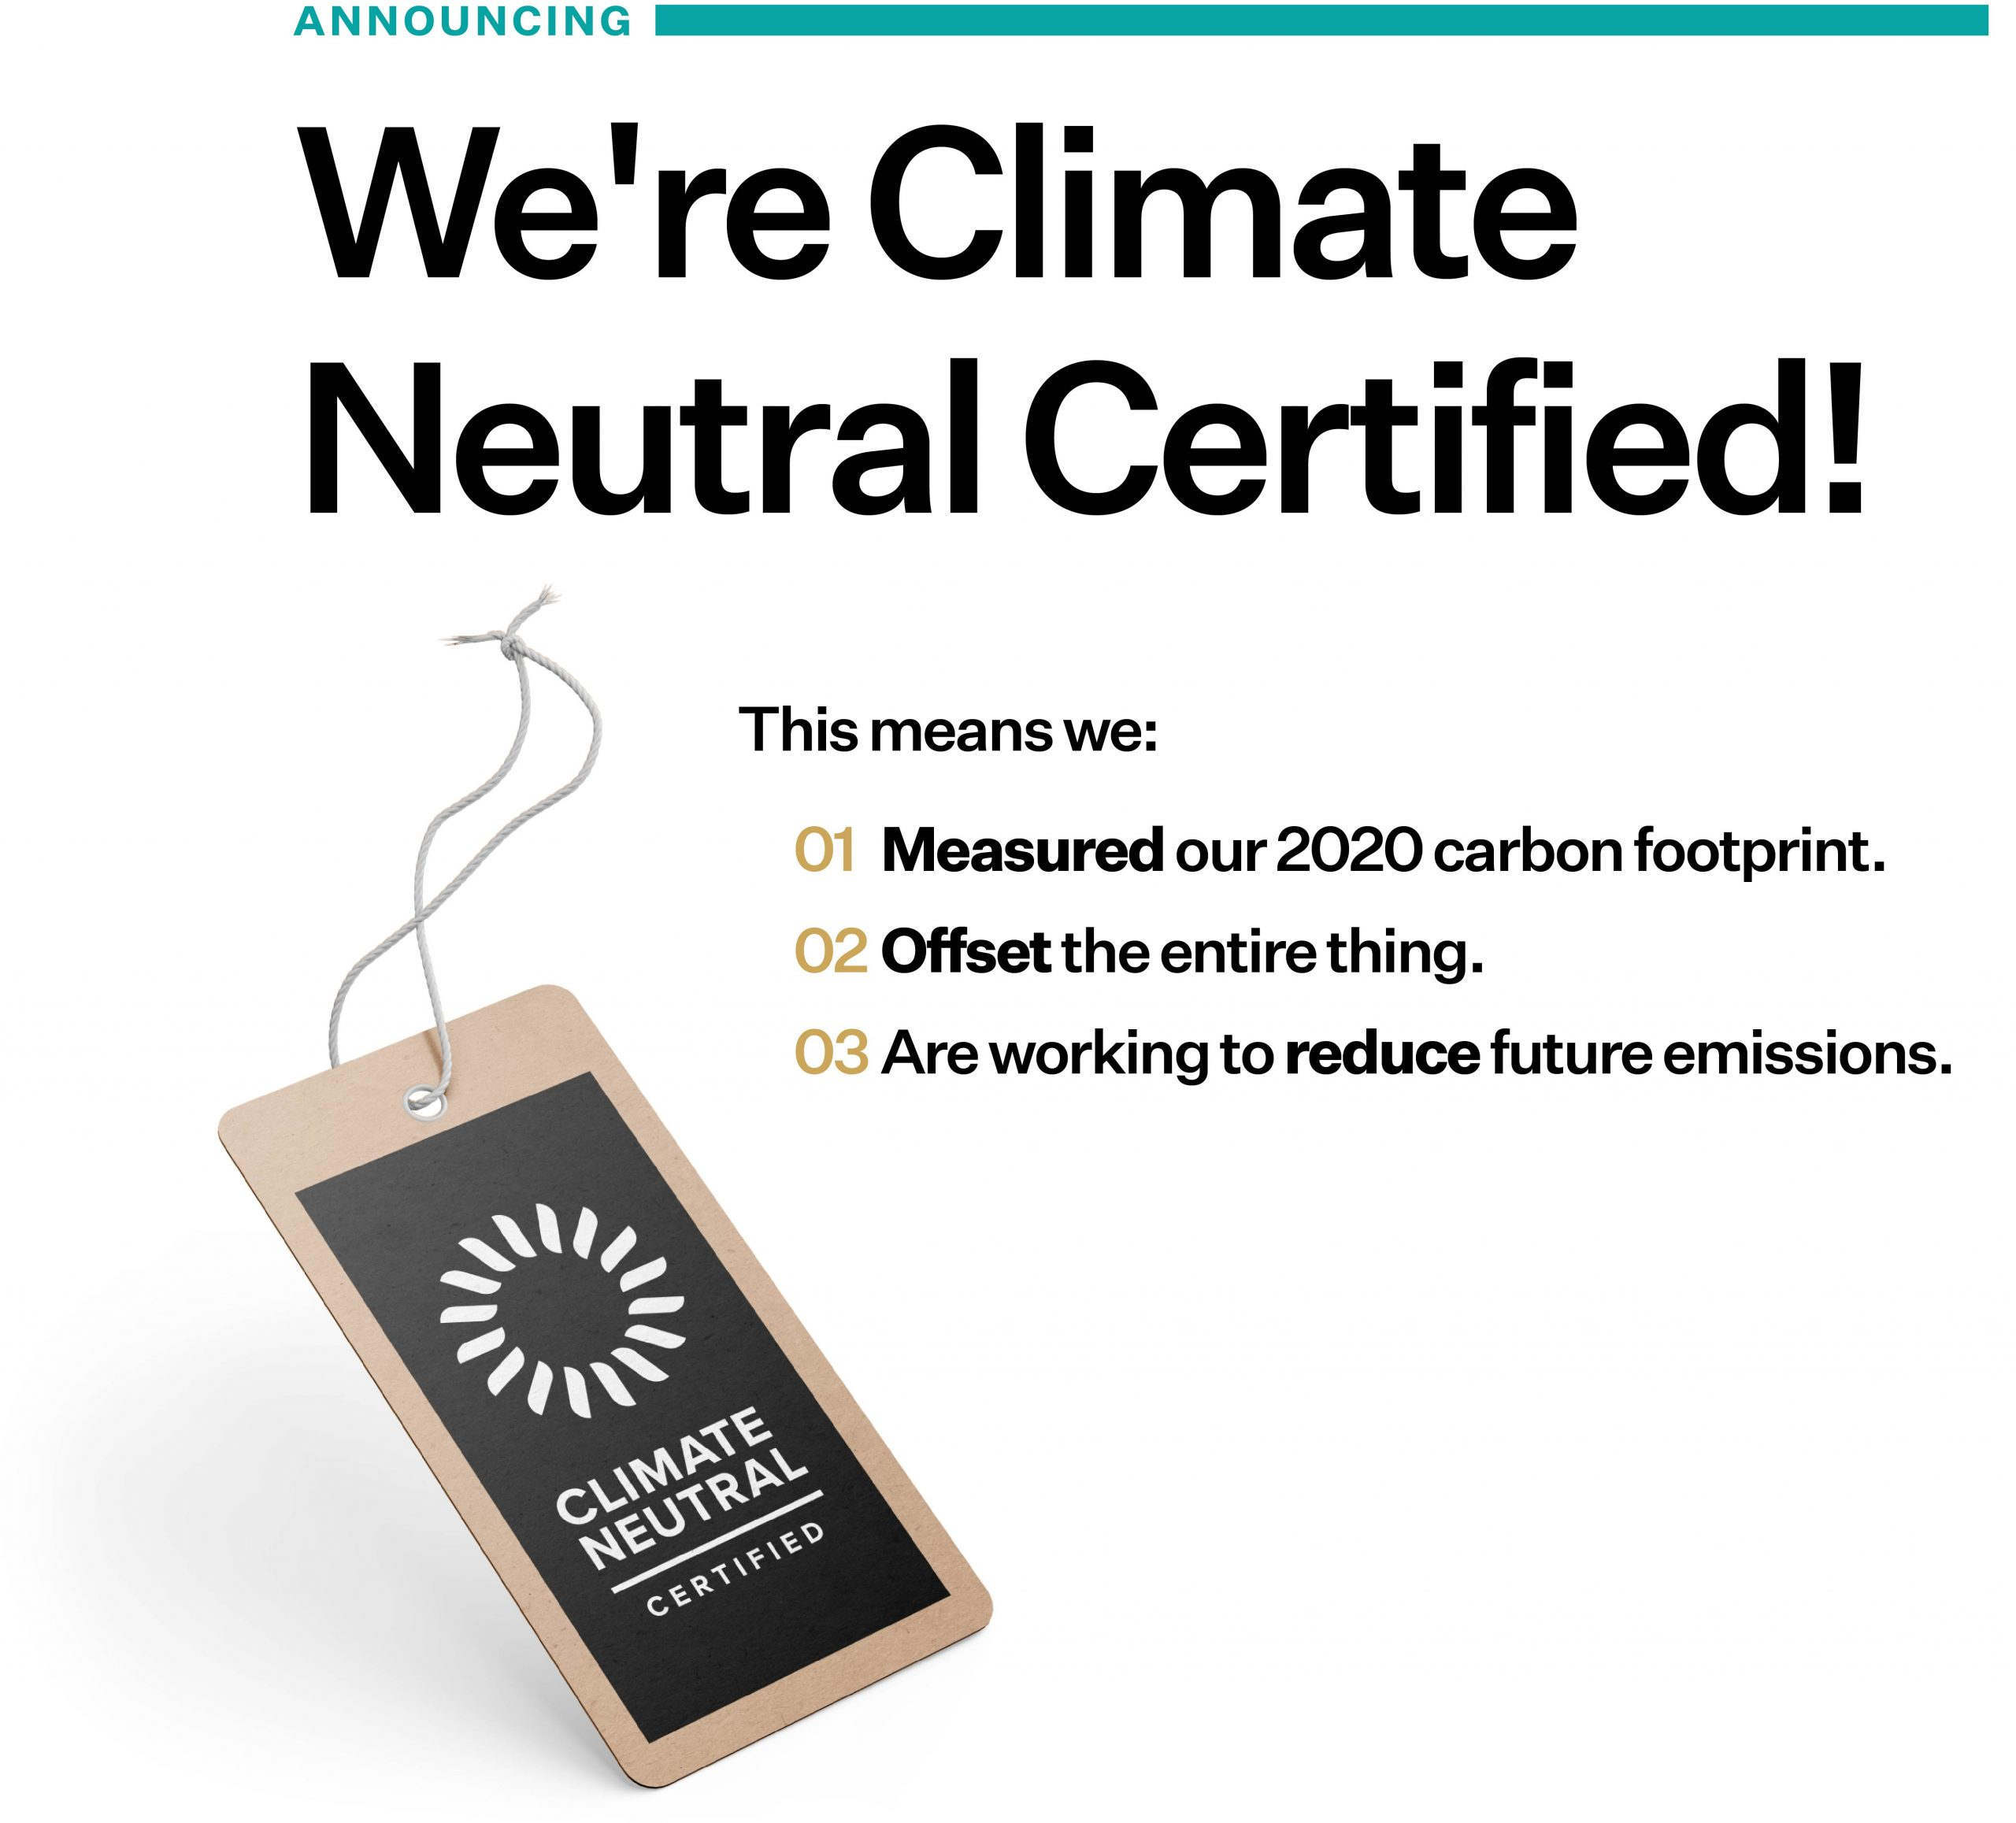 Climate Neutral Certified Steps